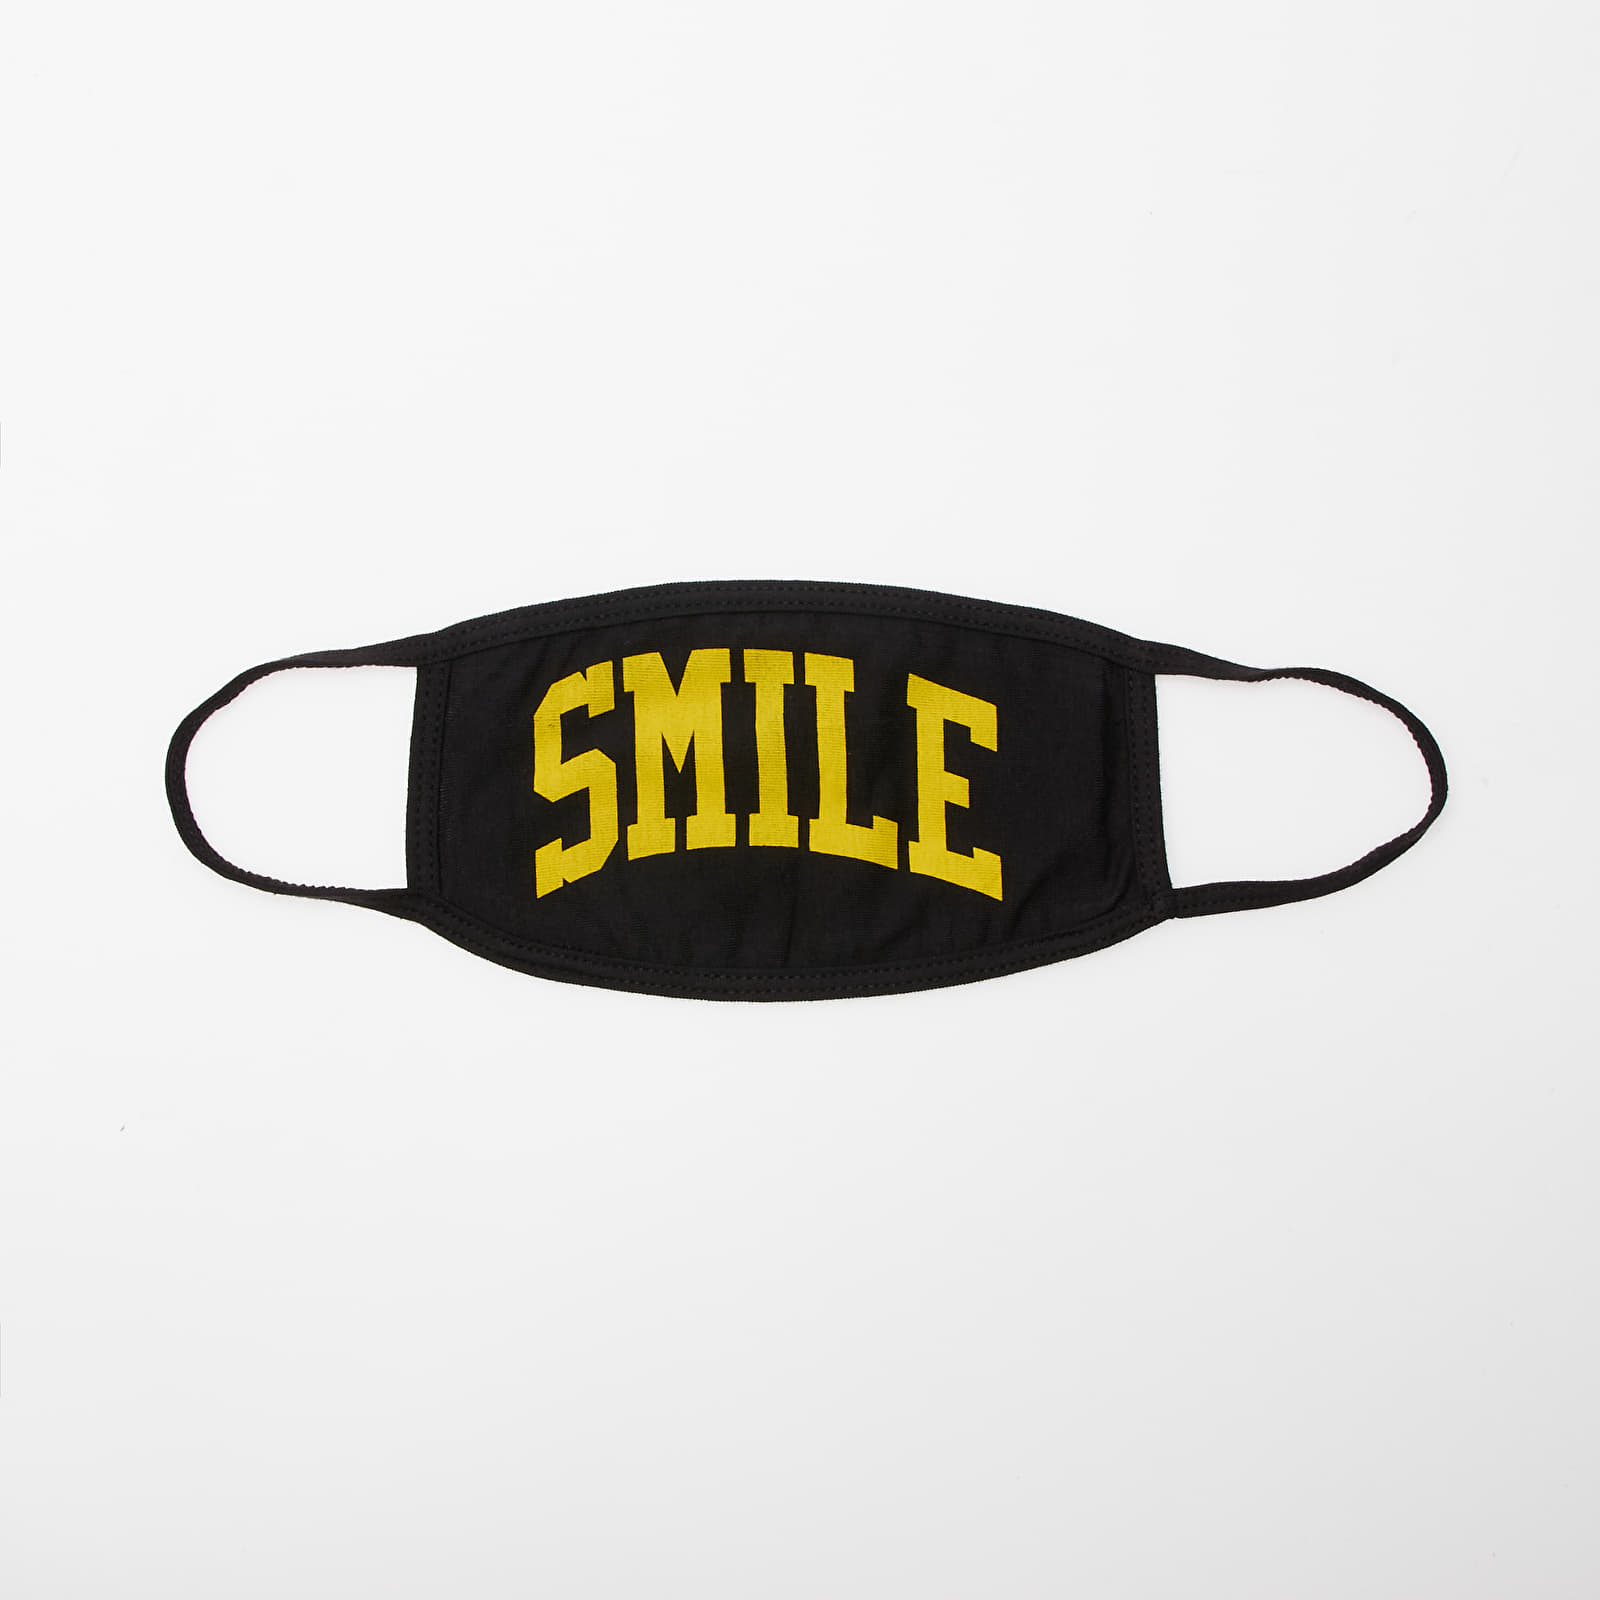 Dodaci Chinatown Market Smile Face Mask Black